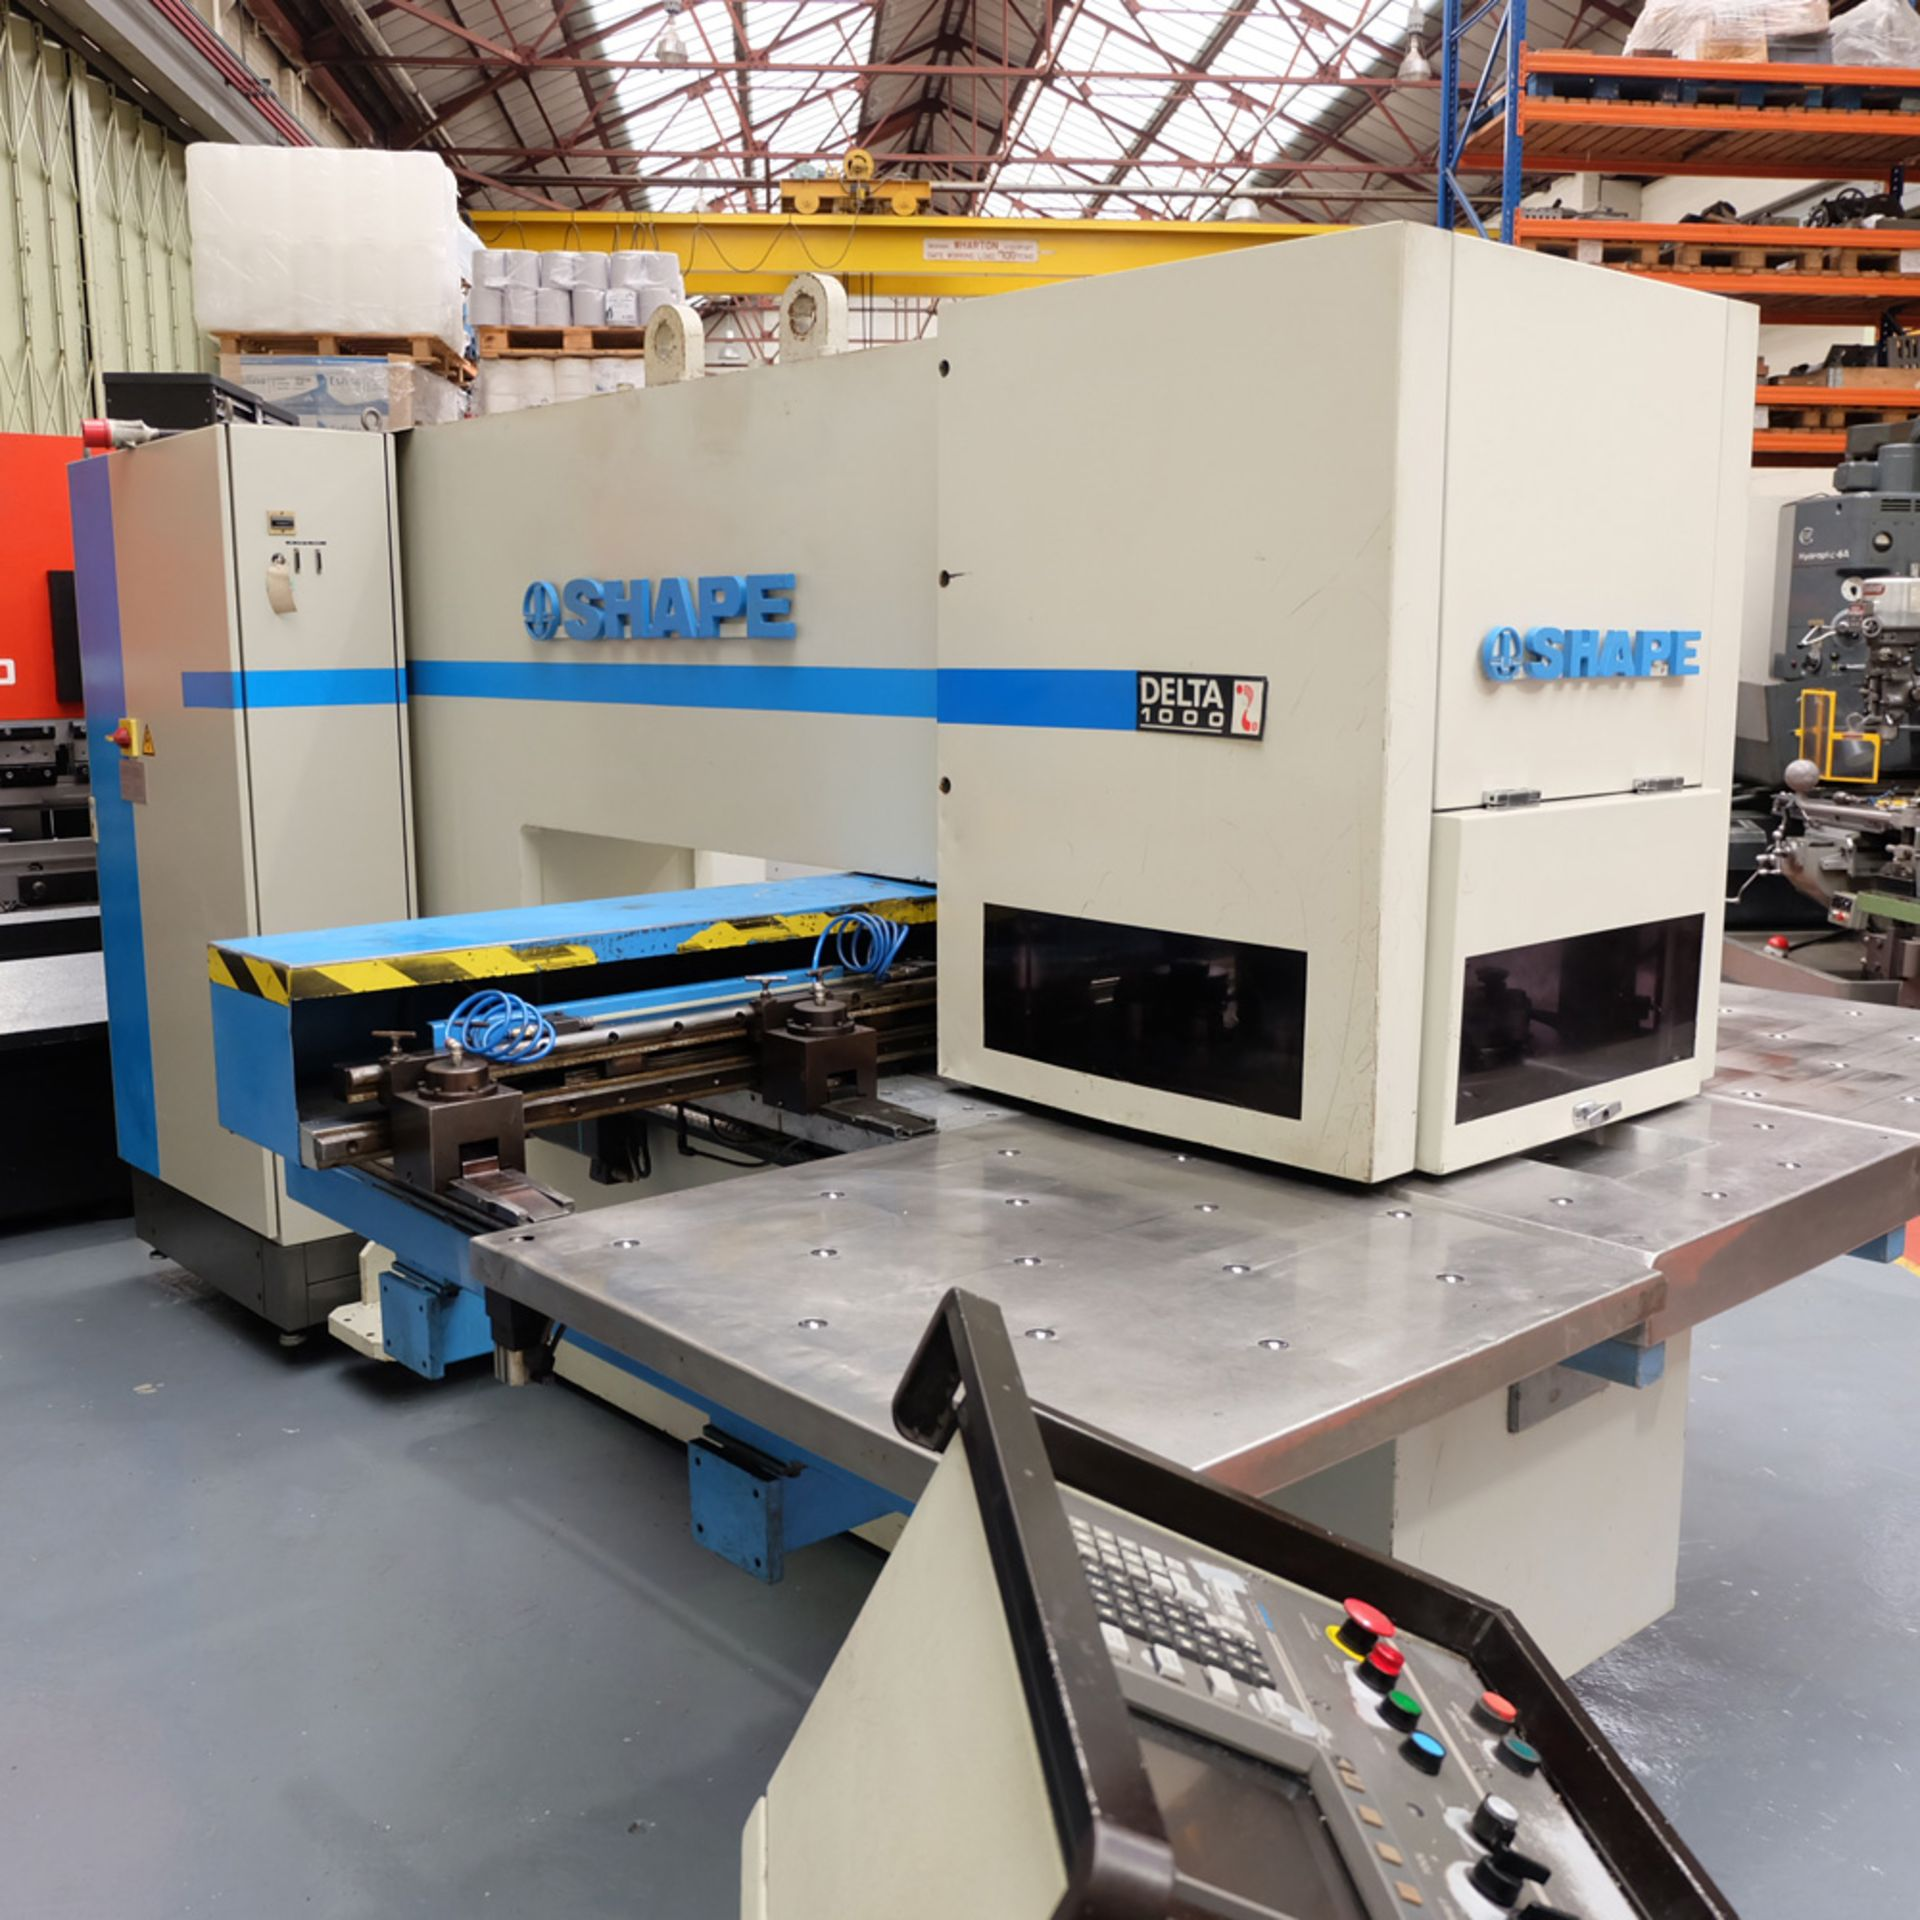 LVD SHAPE Model Delta 1000 Thick CNC Punching Machine.With Fanuc MNC 4000 Control.Capacity: 20 Tons. - Image 6 of 19